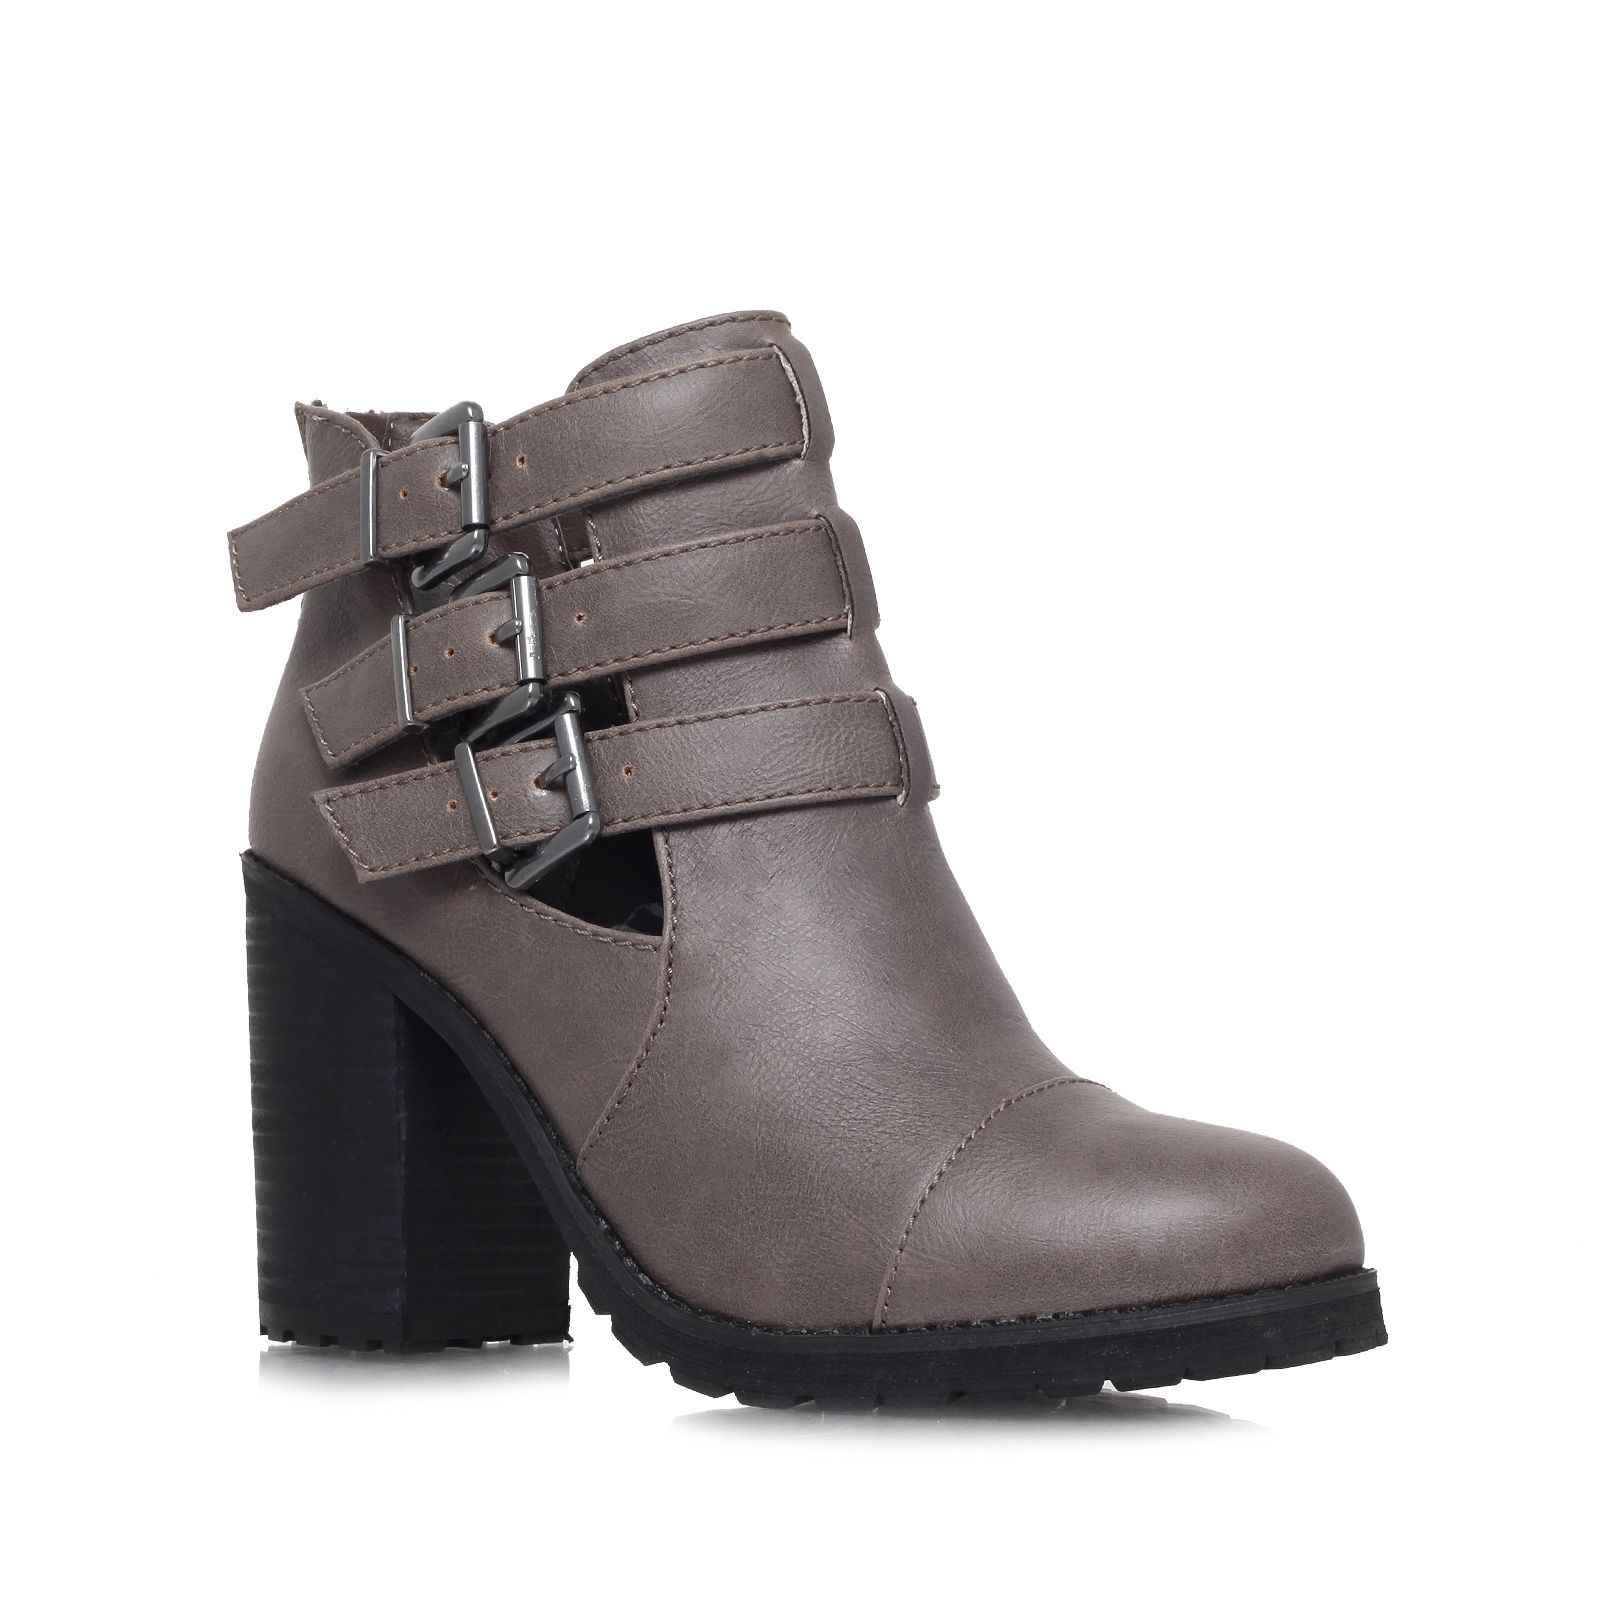 Bianca ankle boots